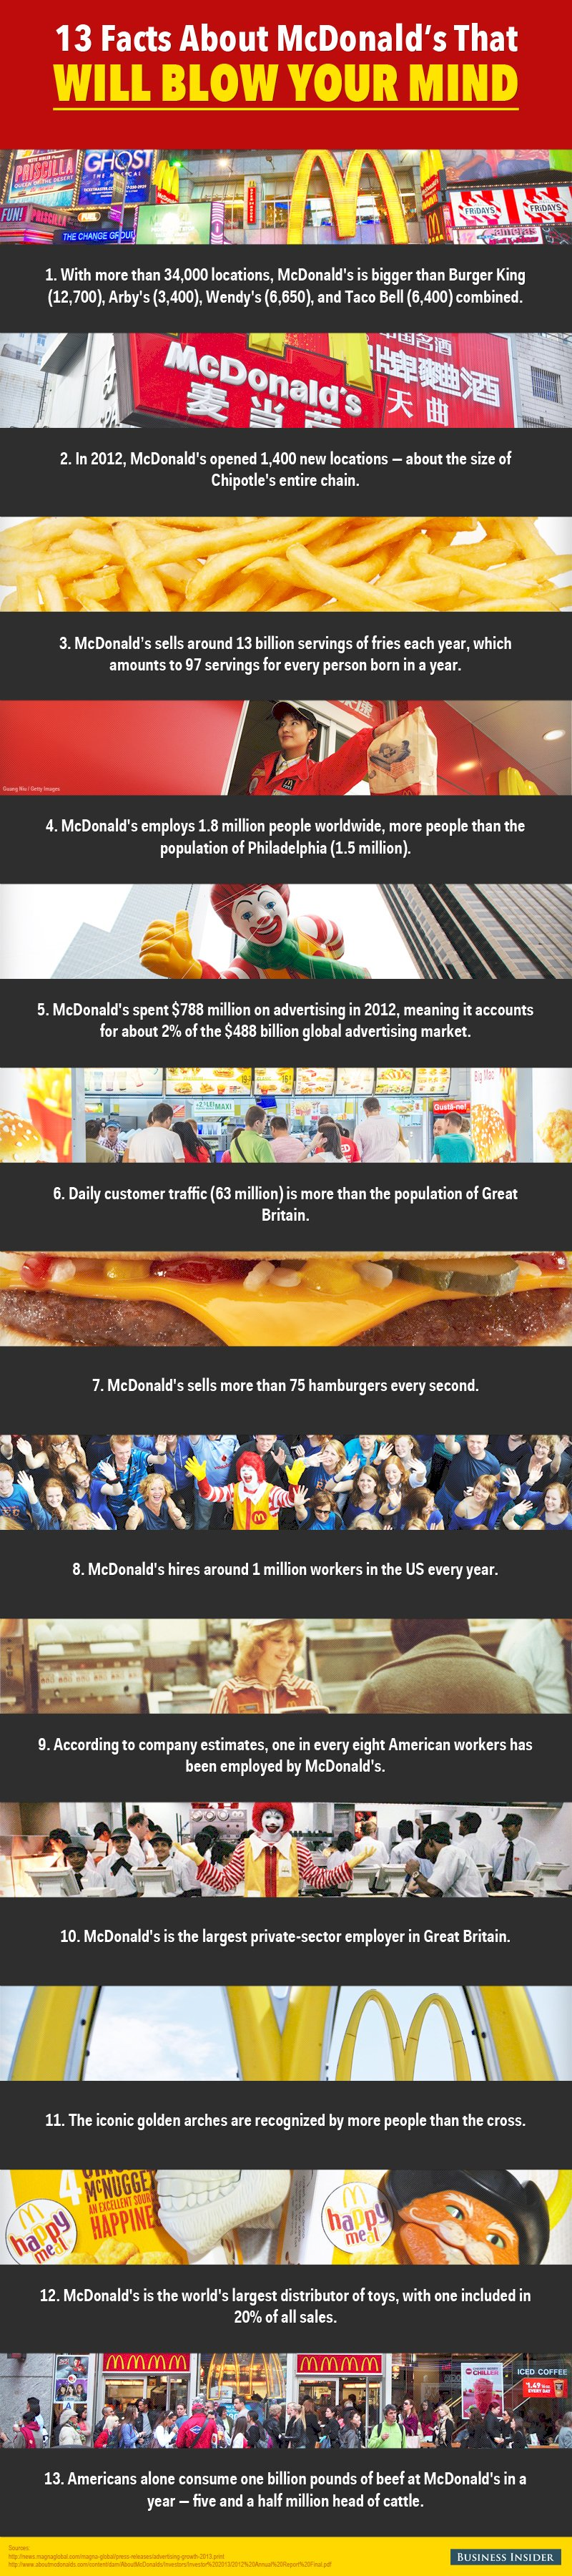 Facts-About-McDonalds